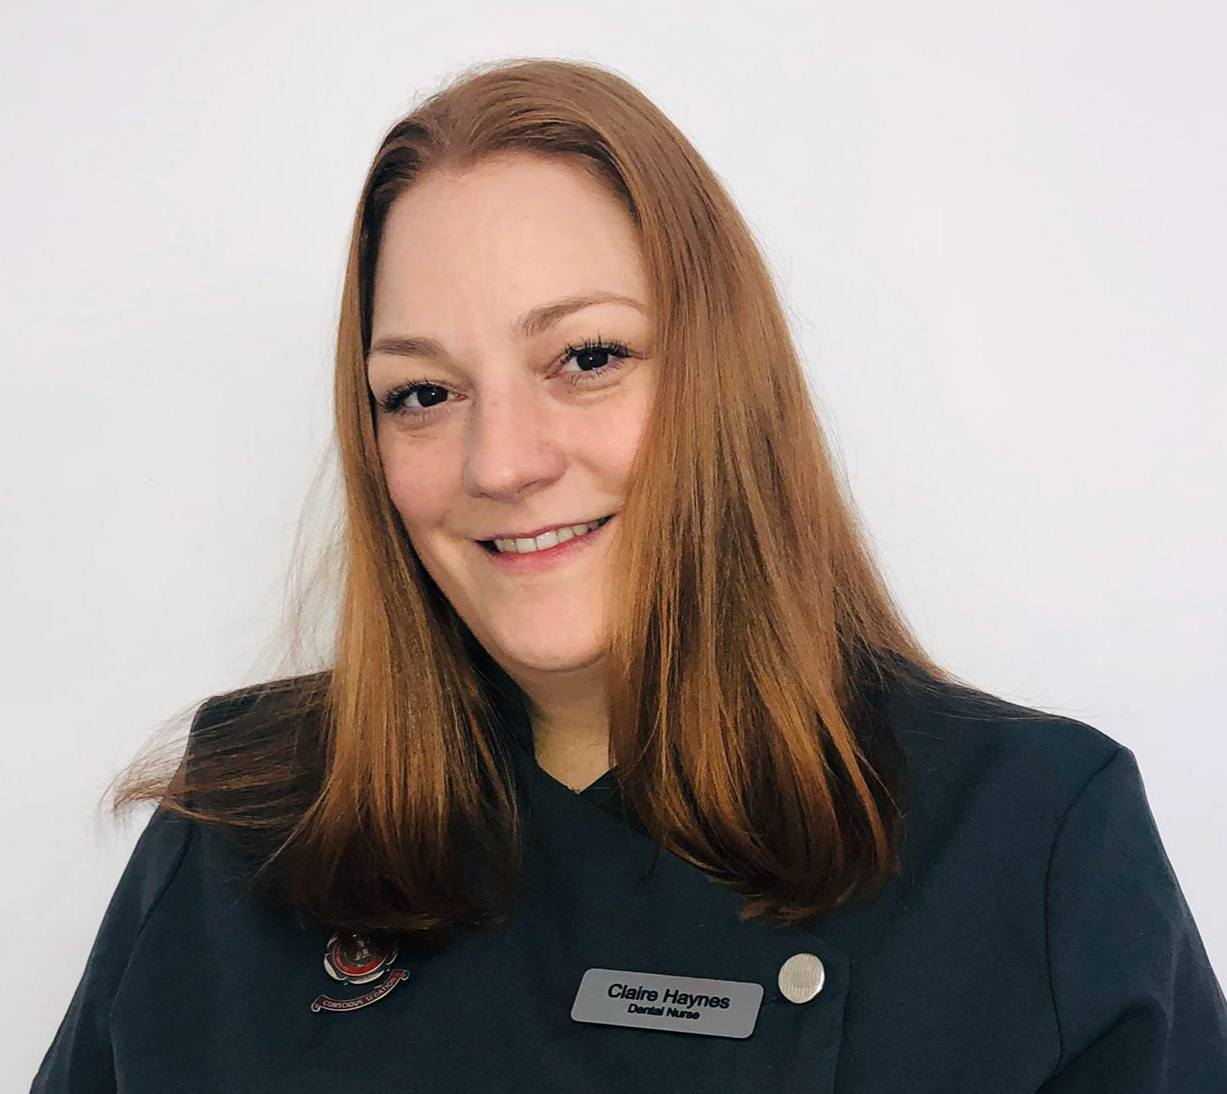 Claire Haynes is a Dental Nurse at Etwall Dental Practice